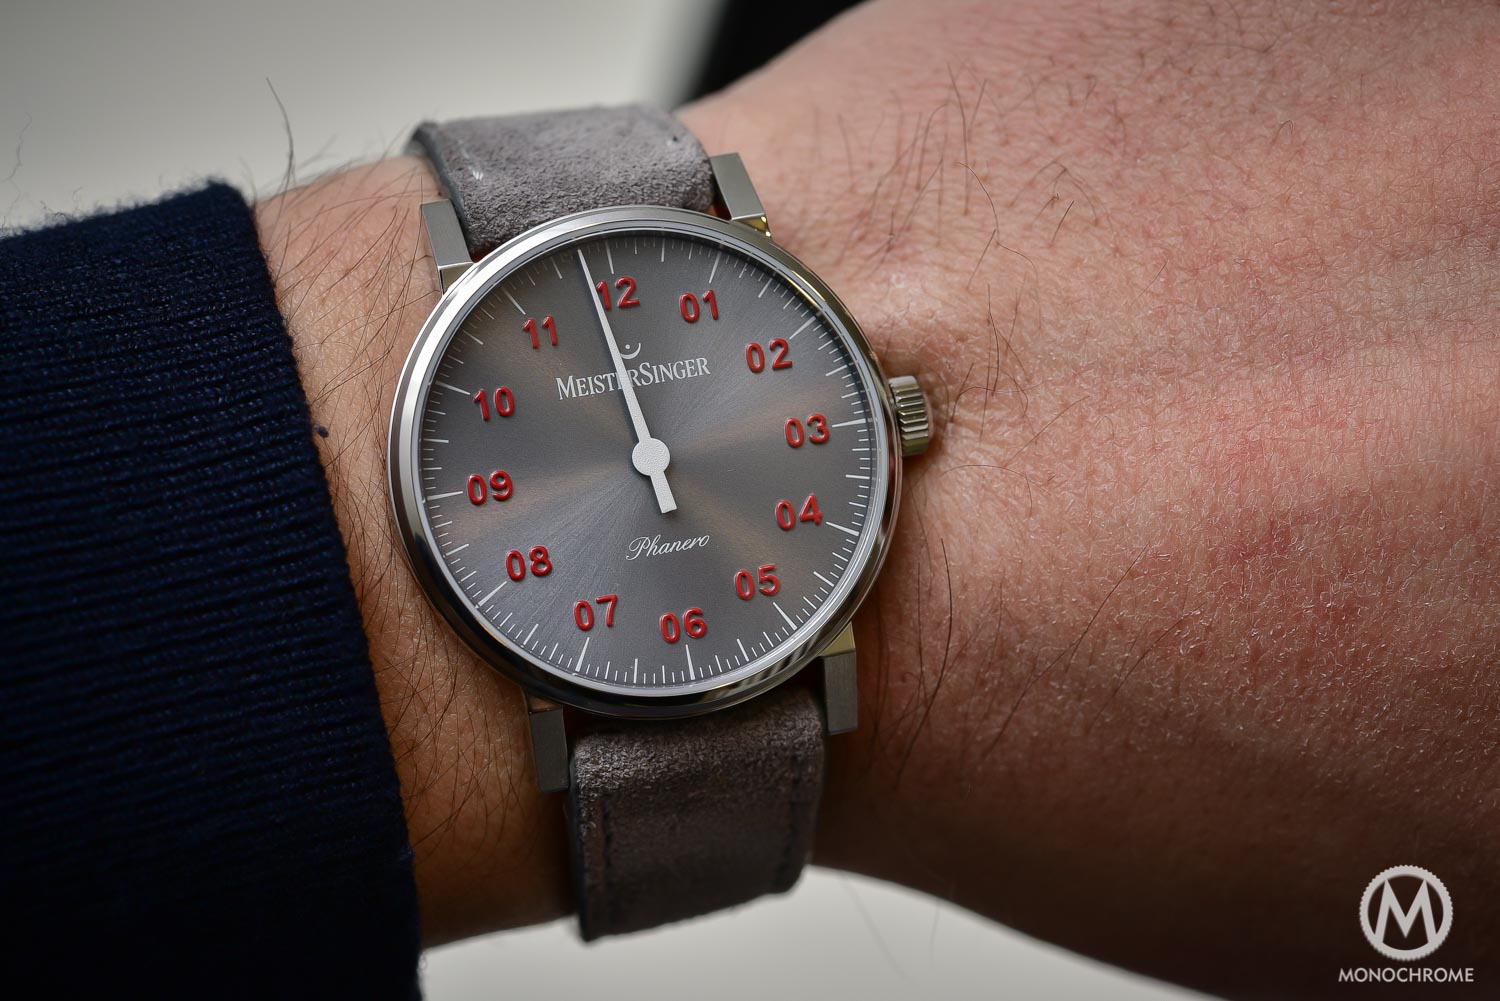 Hands-on – MeisterSinger Phanero – the new small, thin and elegant watch from Baselworld 2016 (Live pics & price)